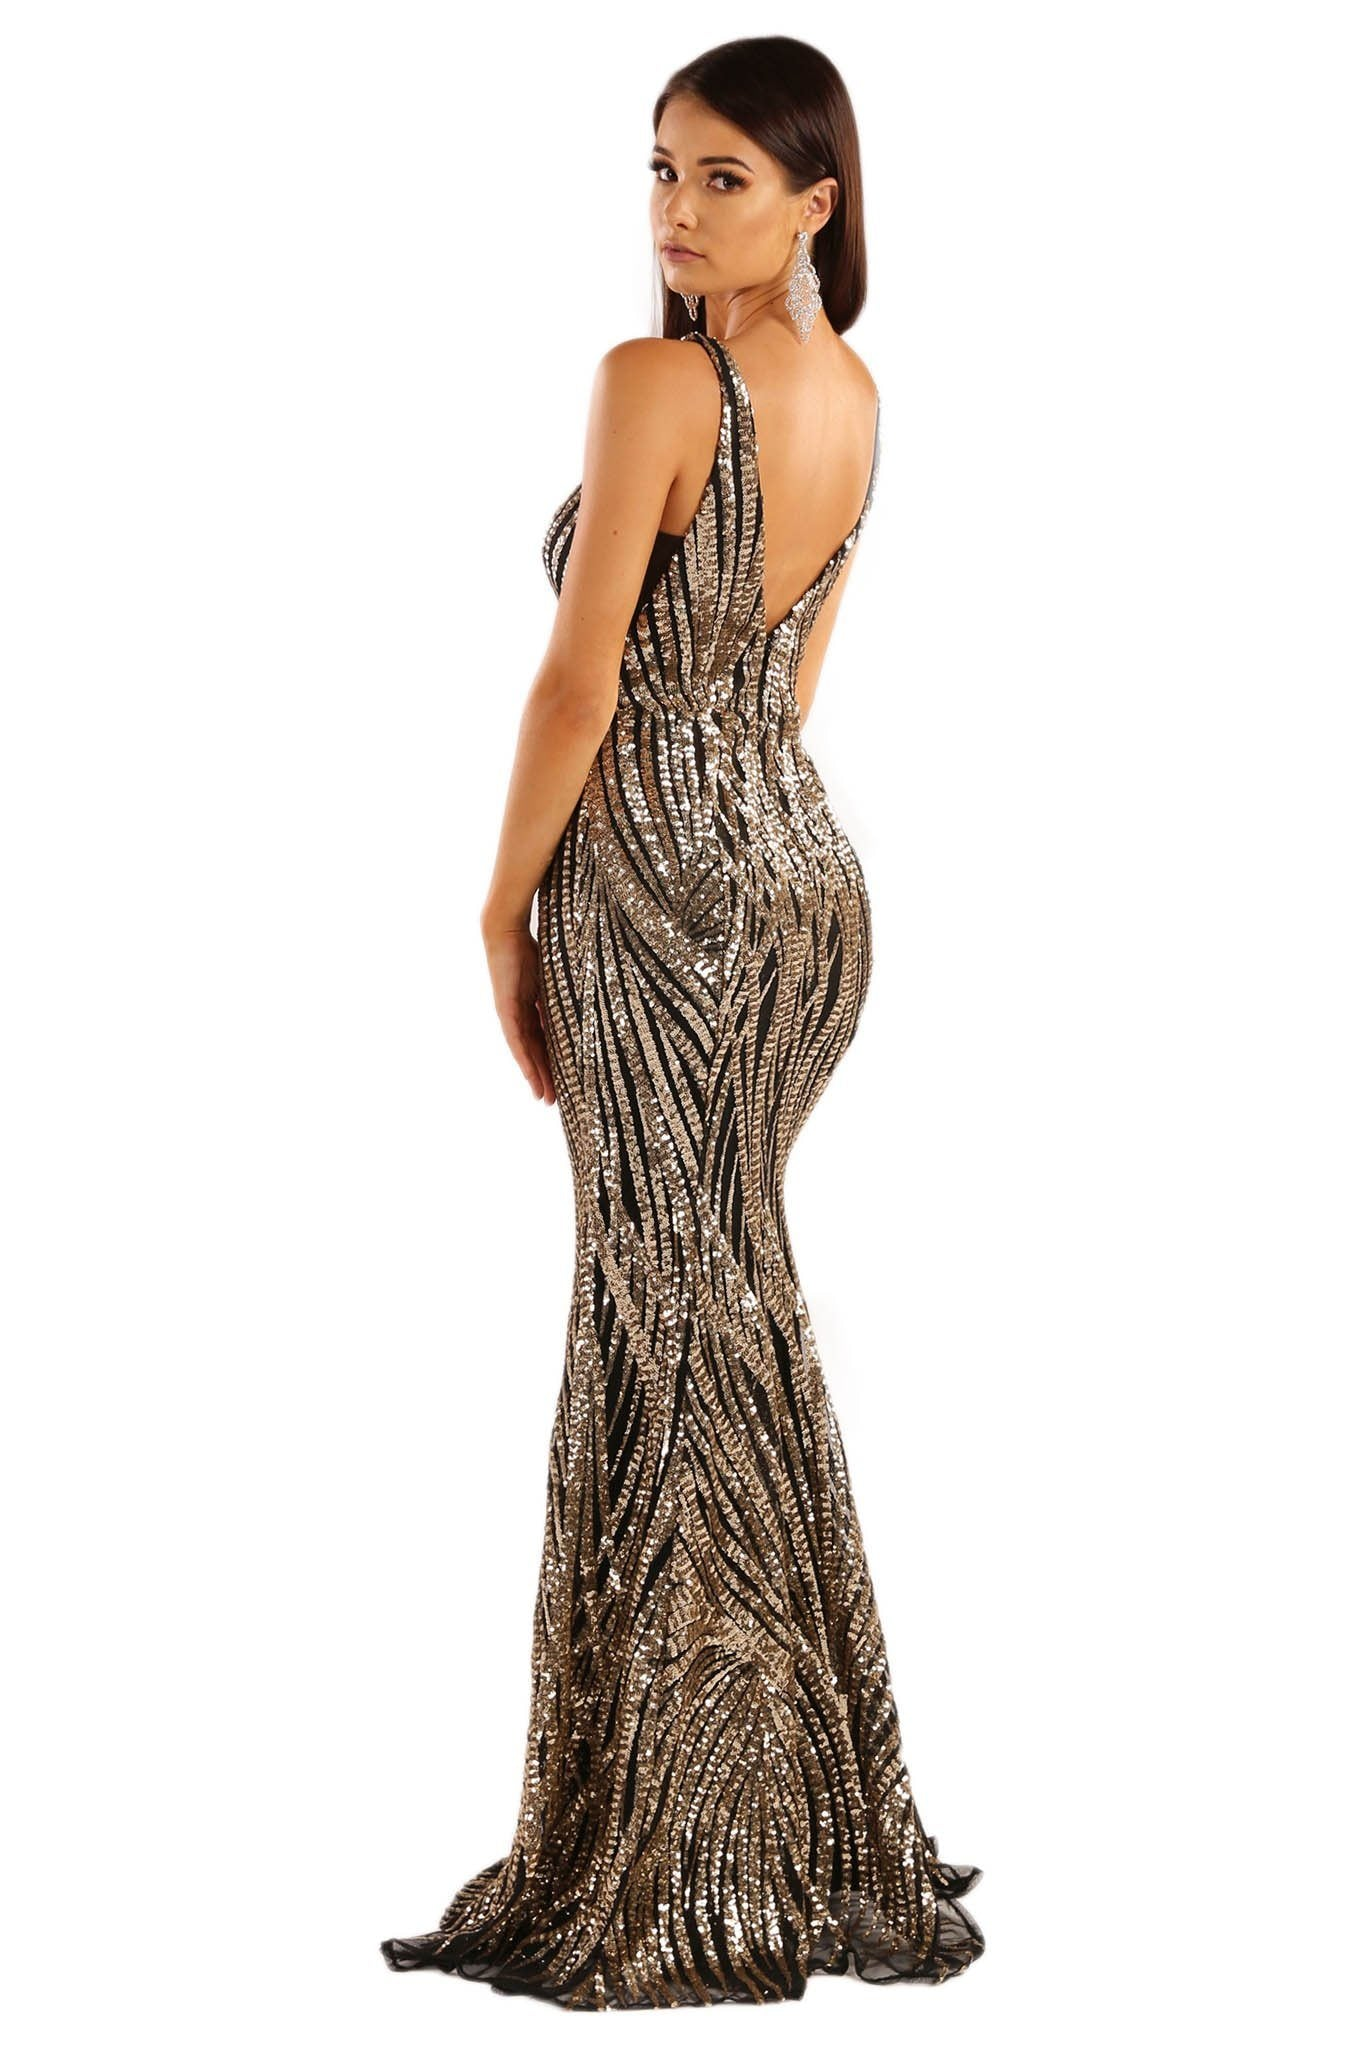 4c58646b8a3 ... V Shape Open Back Design of Gold and Black Floor Length Formal Sequin  Gown with Wavy ...